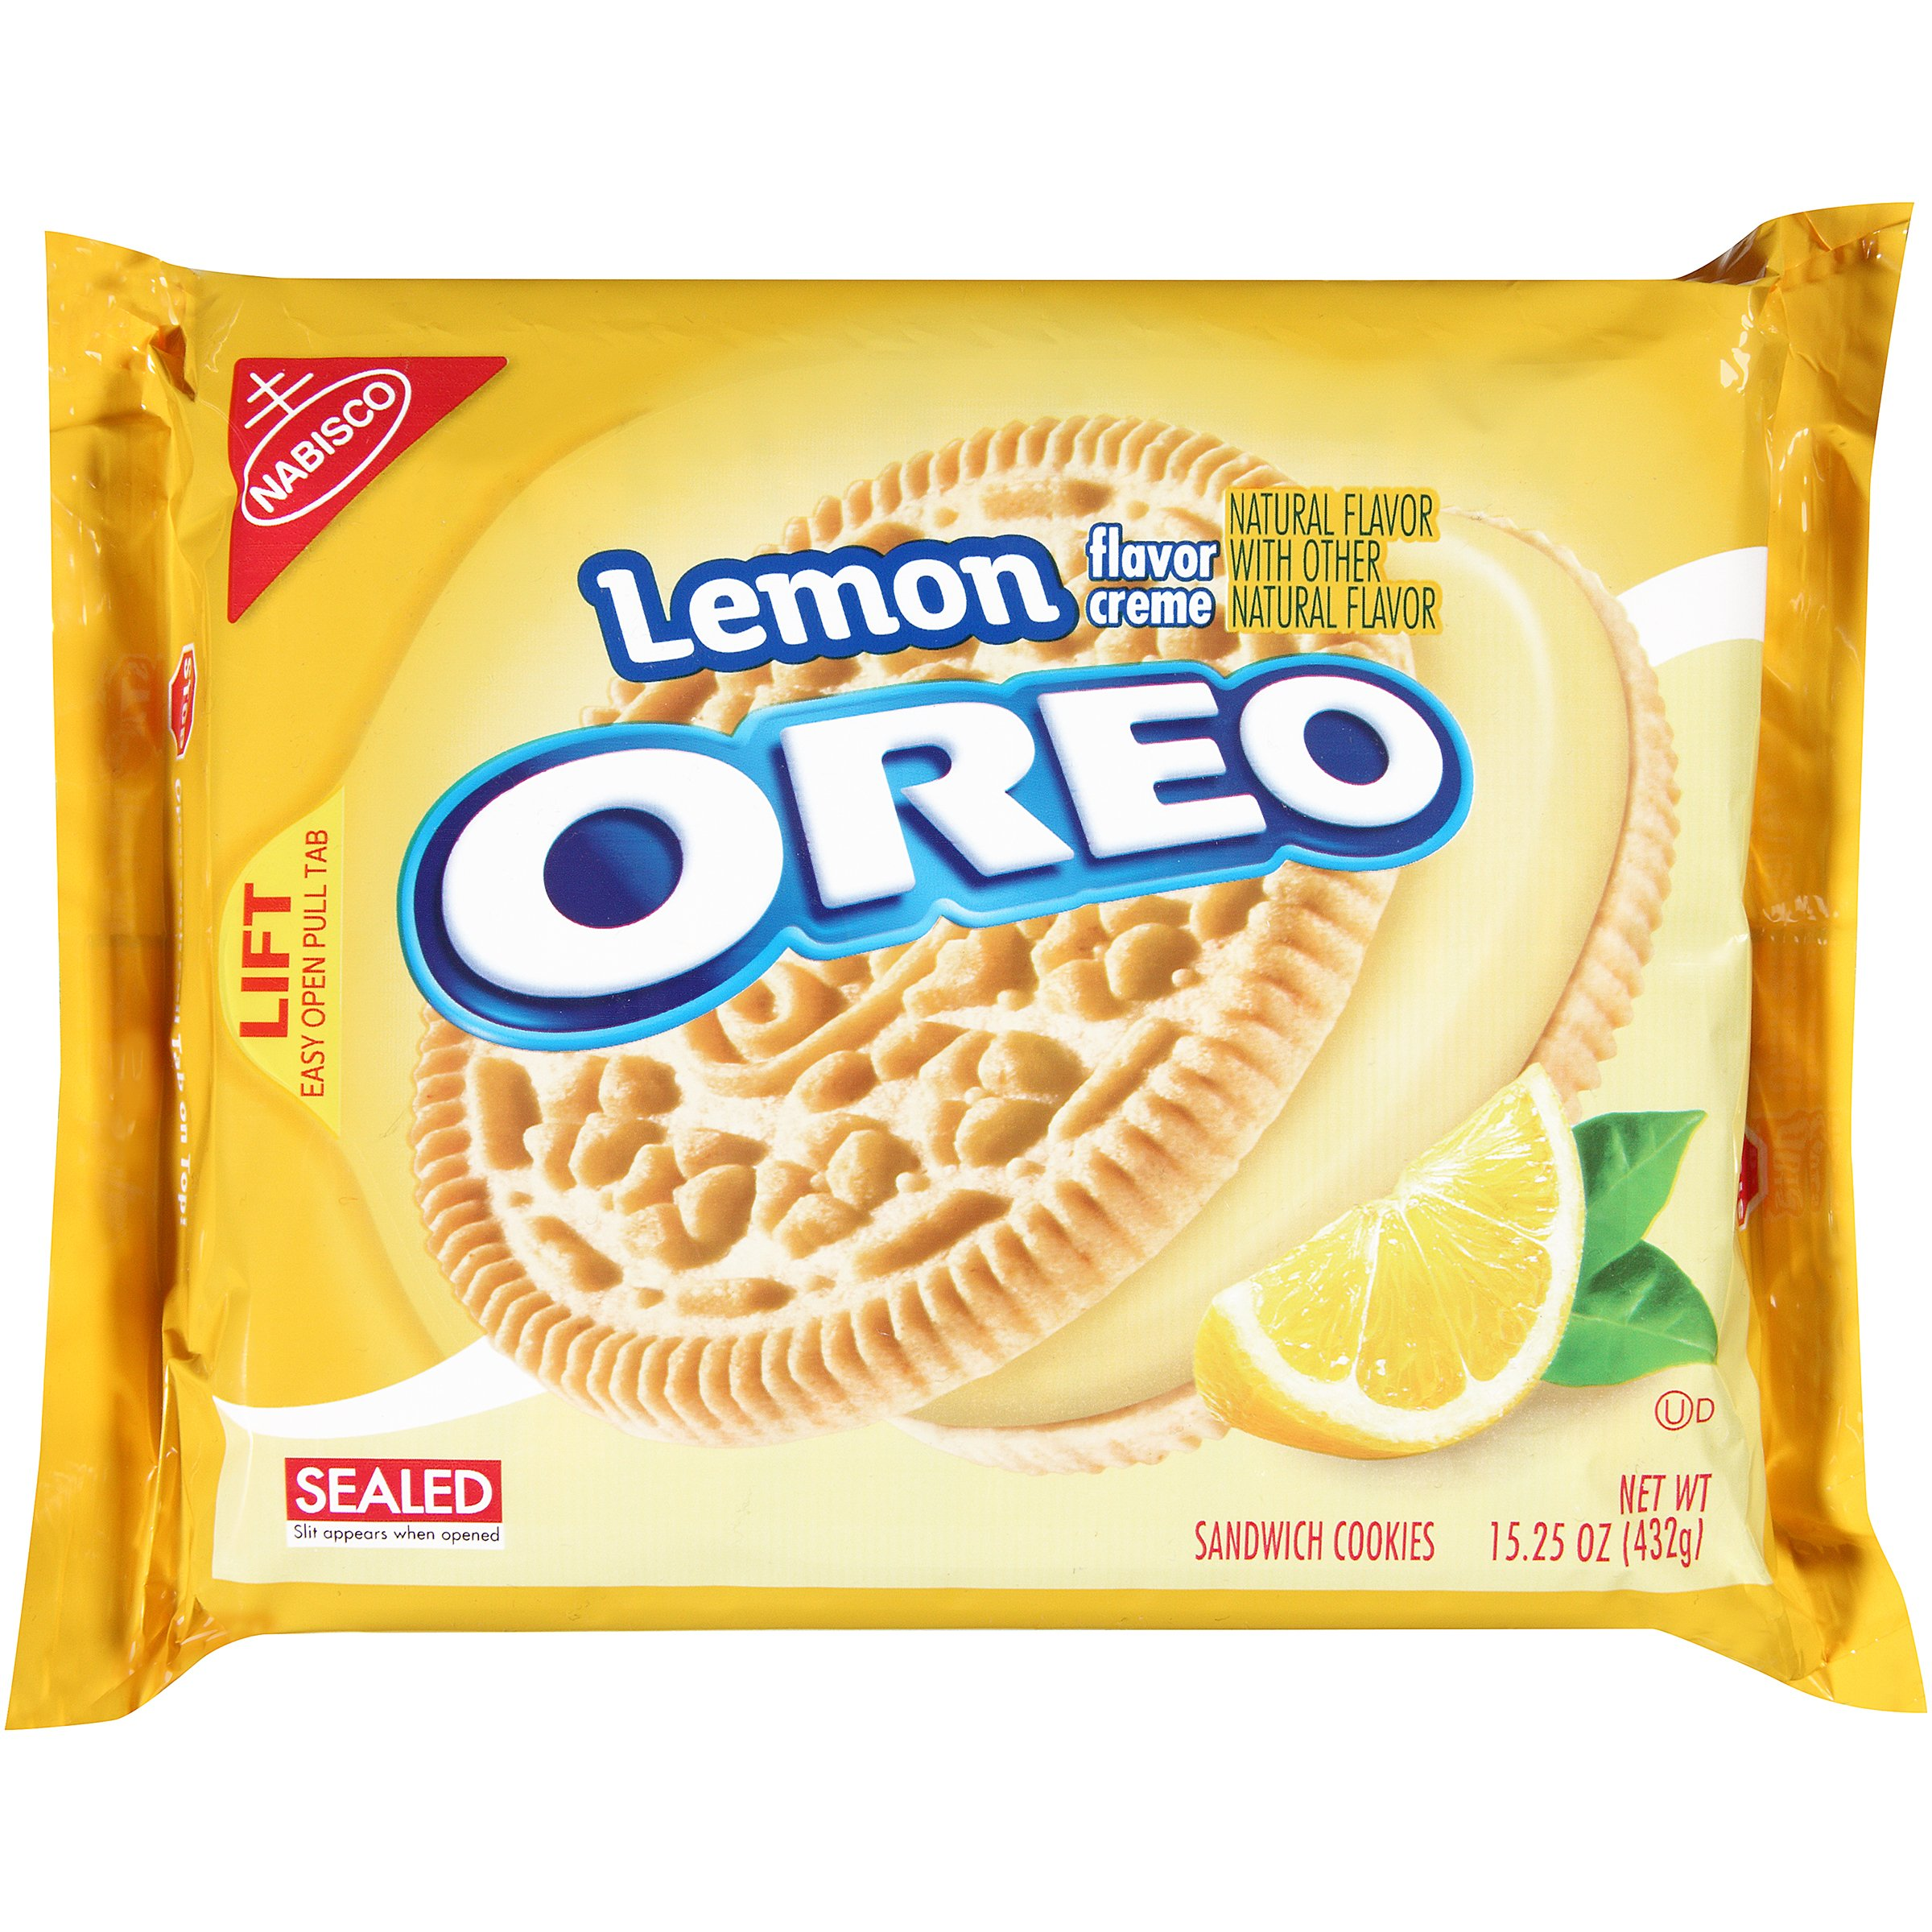 Oreo Lemon Creme Sandwich Cookies, 15.25 Ounce (Pack of 12)